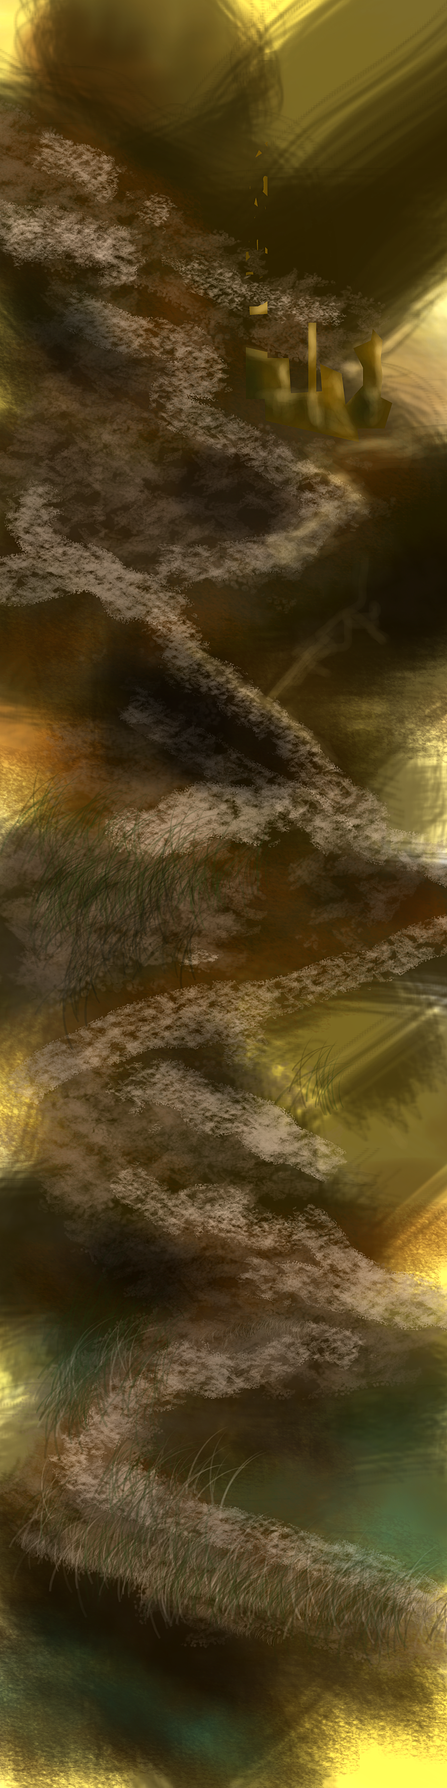 Composition Study for 12 x 48 painting. by DougQ